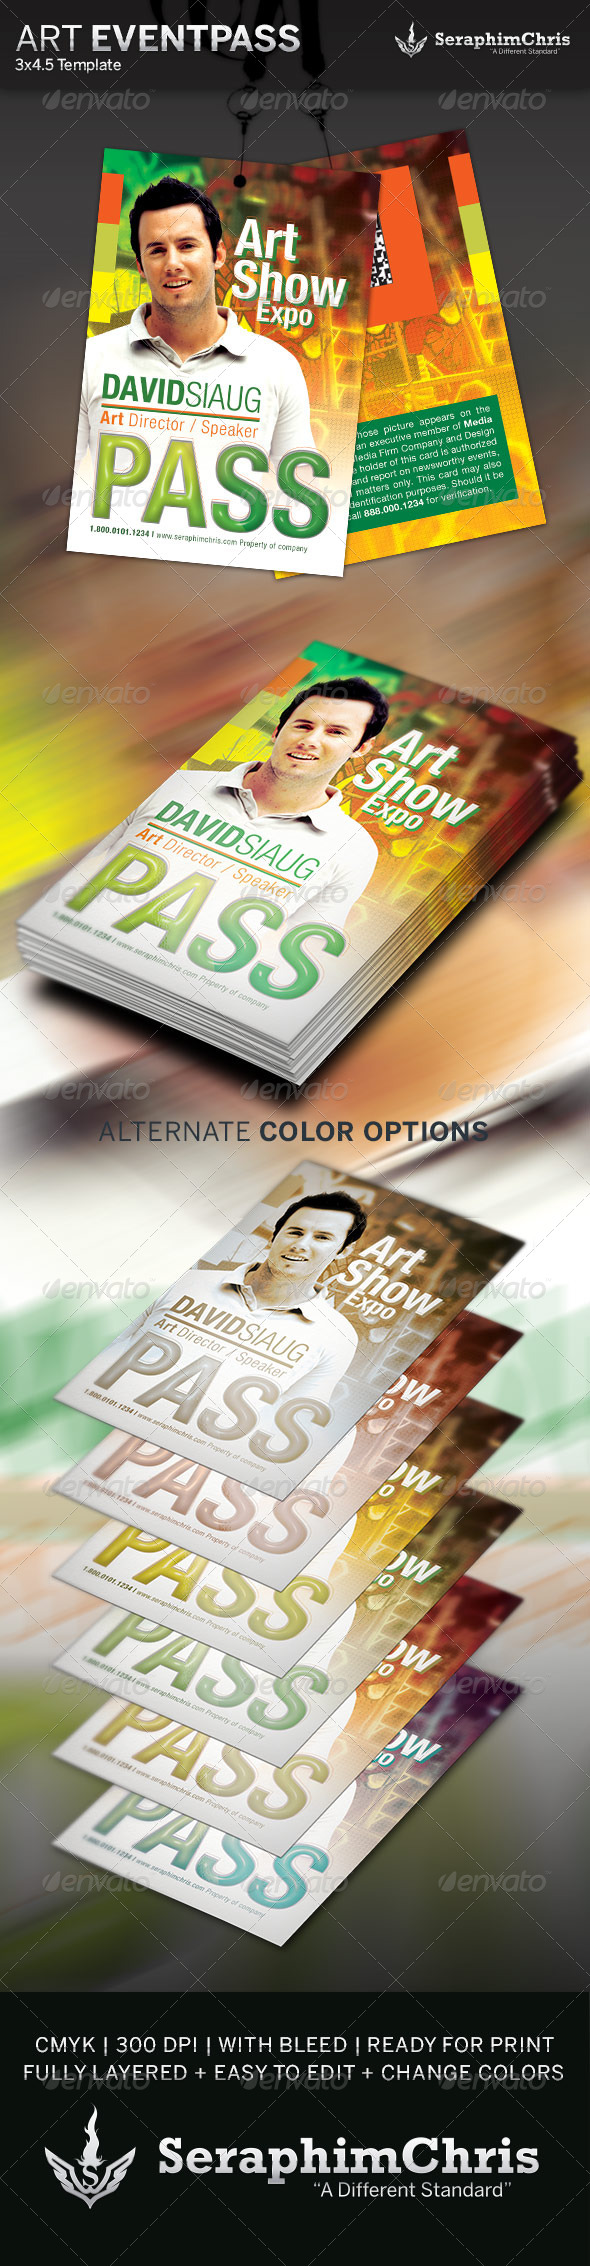 Art Show Event Pass Template - Miscellaneous Print Templates